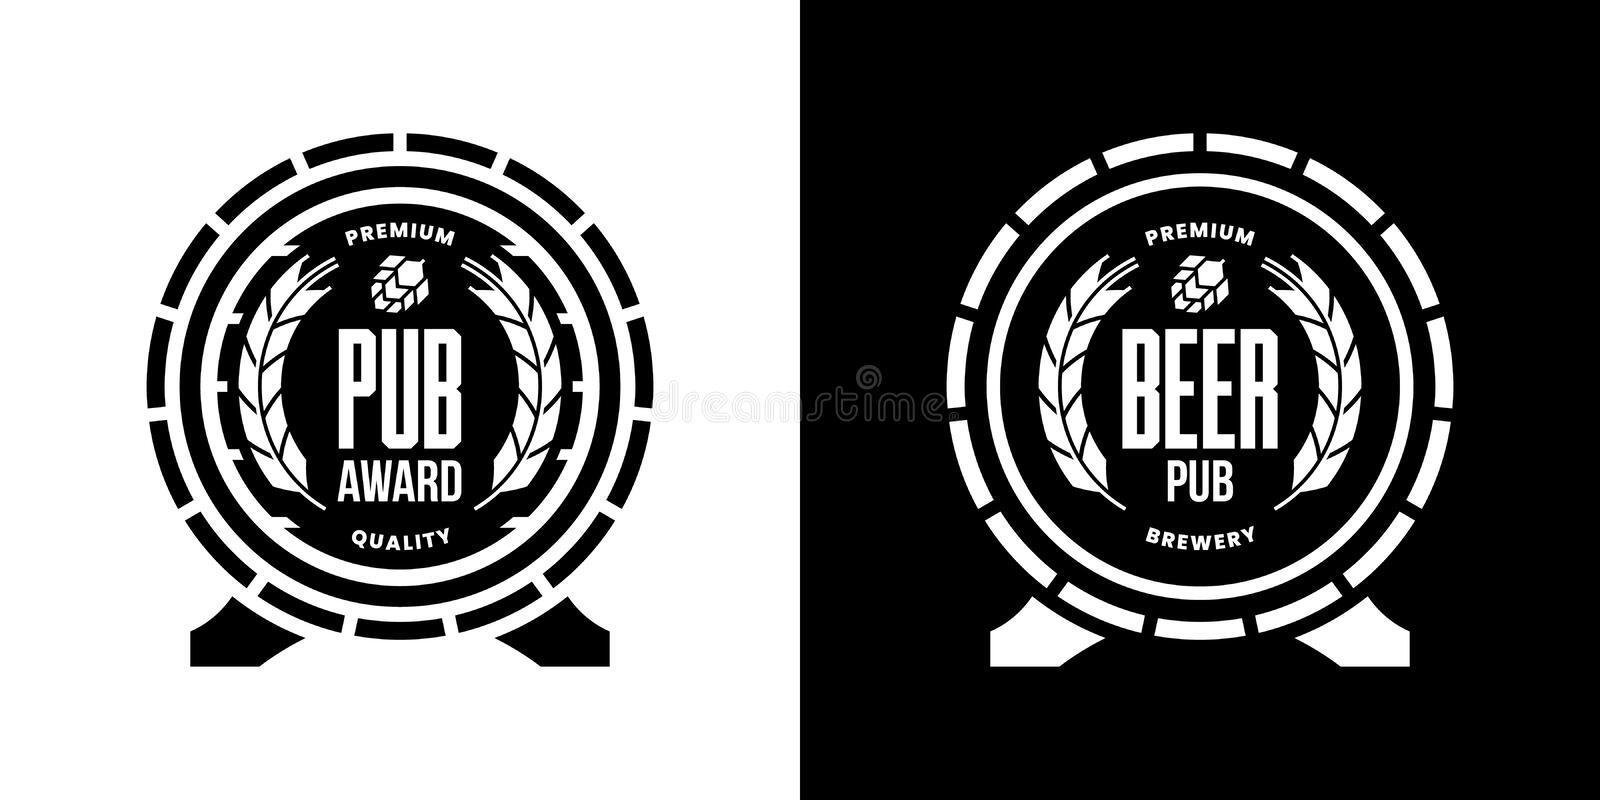 Modern craft beer drink isolated vector logo sign for bar, pub, store, brewhouse, brewery. Premium quality wooden barrel logotype illustration set. Brewing stock illustration